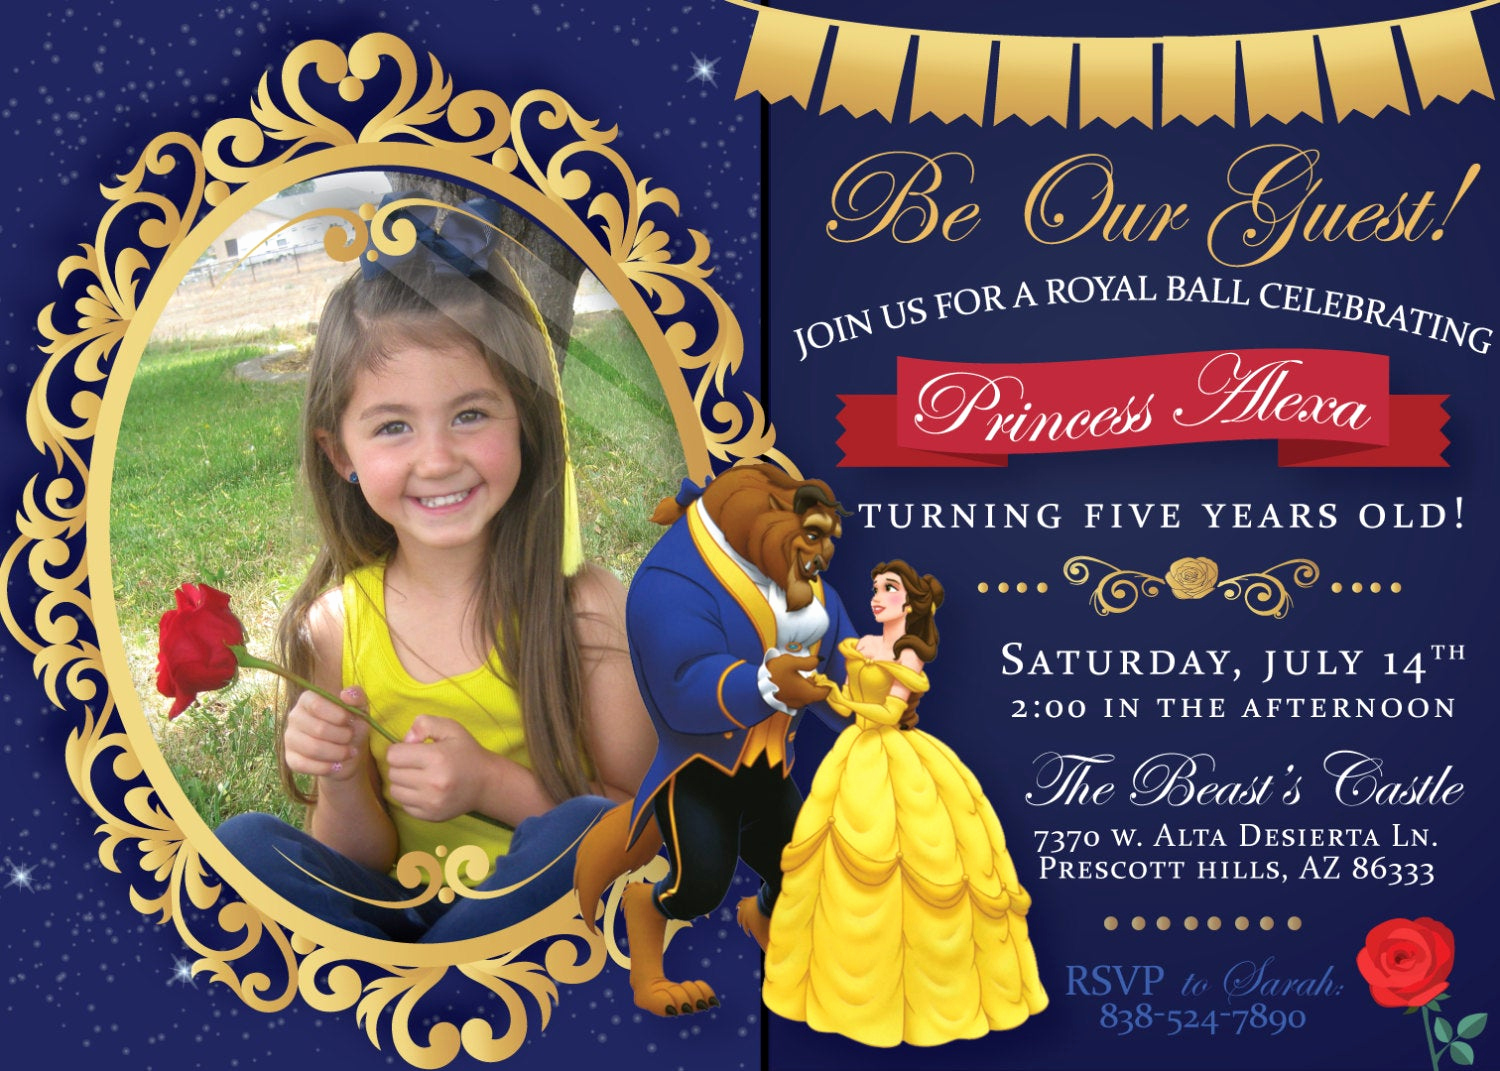 Beauty and the Beast Invitation Awesome Beauty and the Beast Birthday Party Printable Invitation